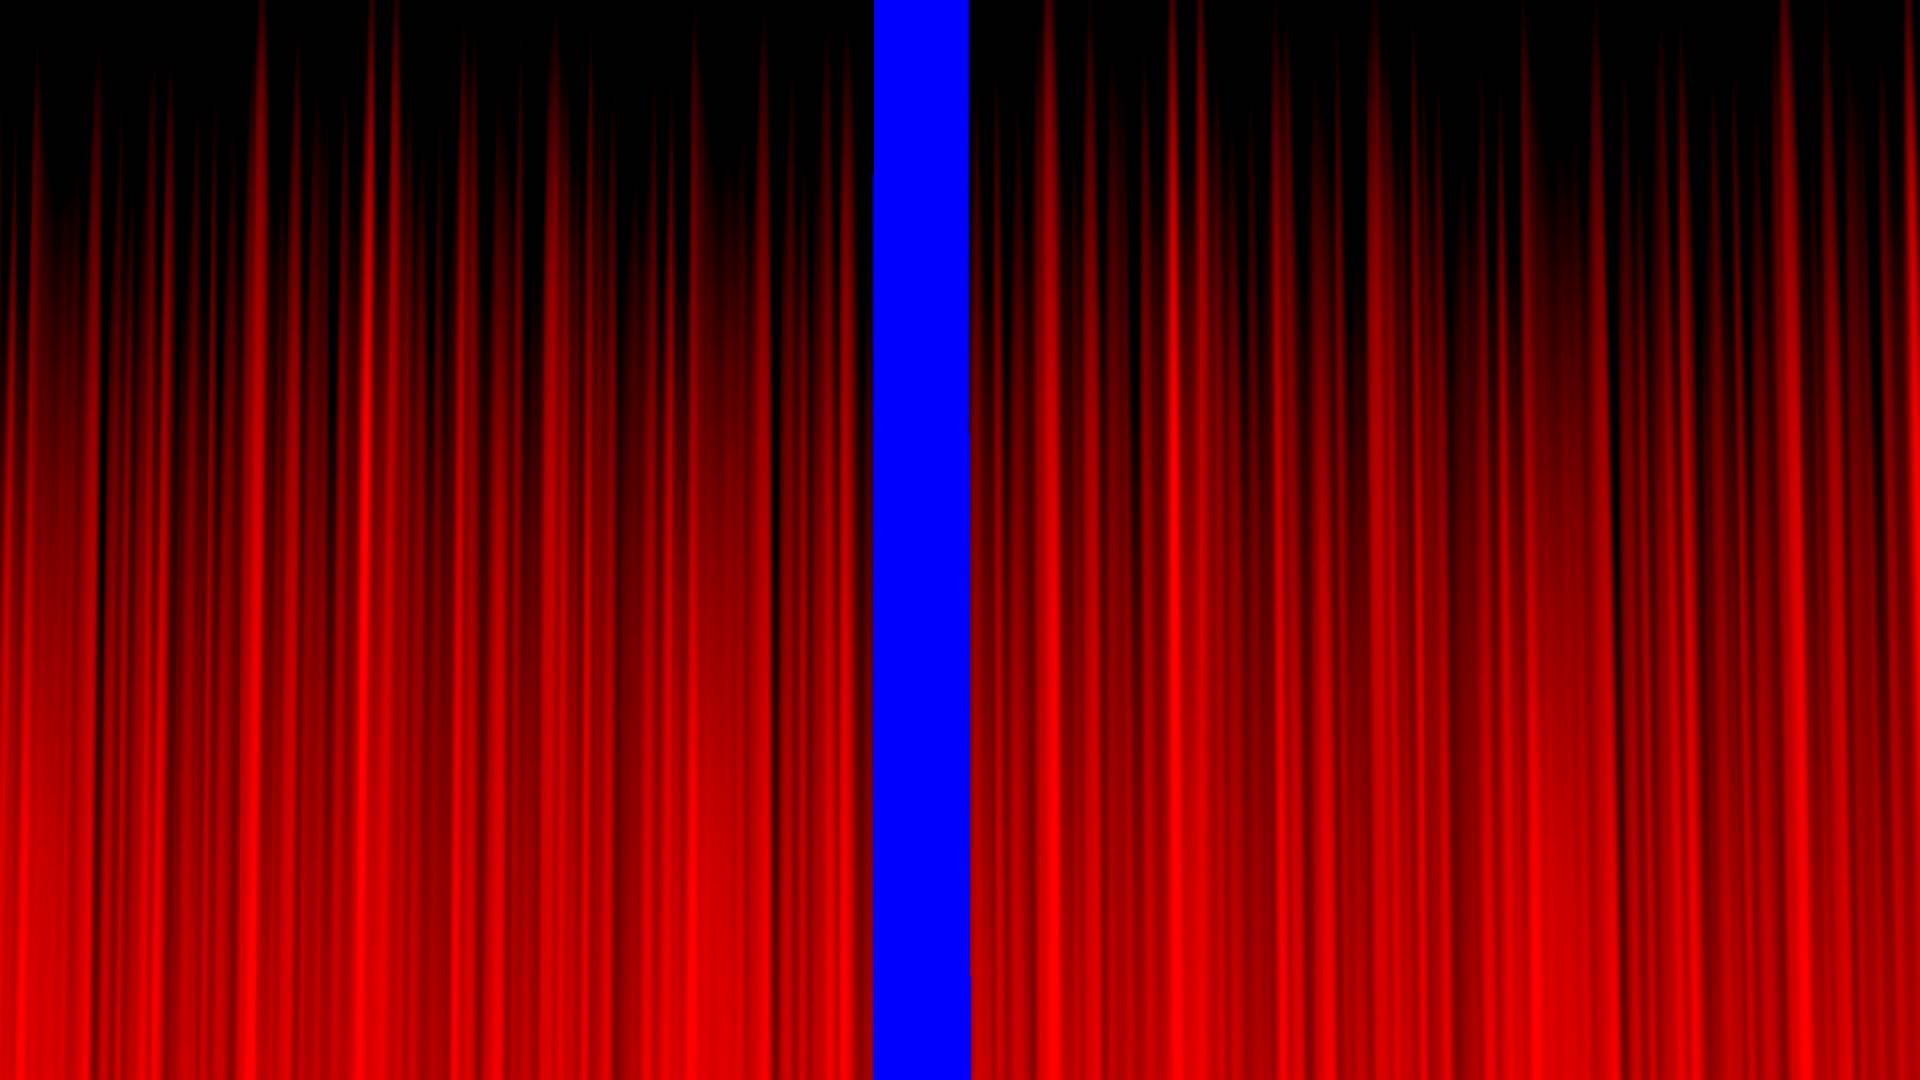 Curtain clipart david lynch Stage Clip RED Art Download